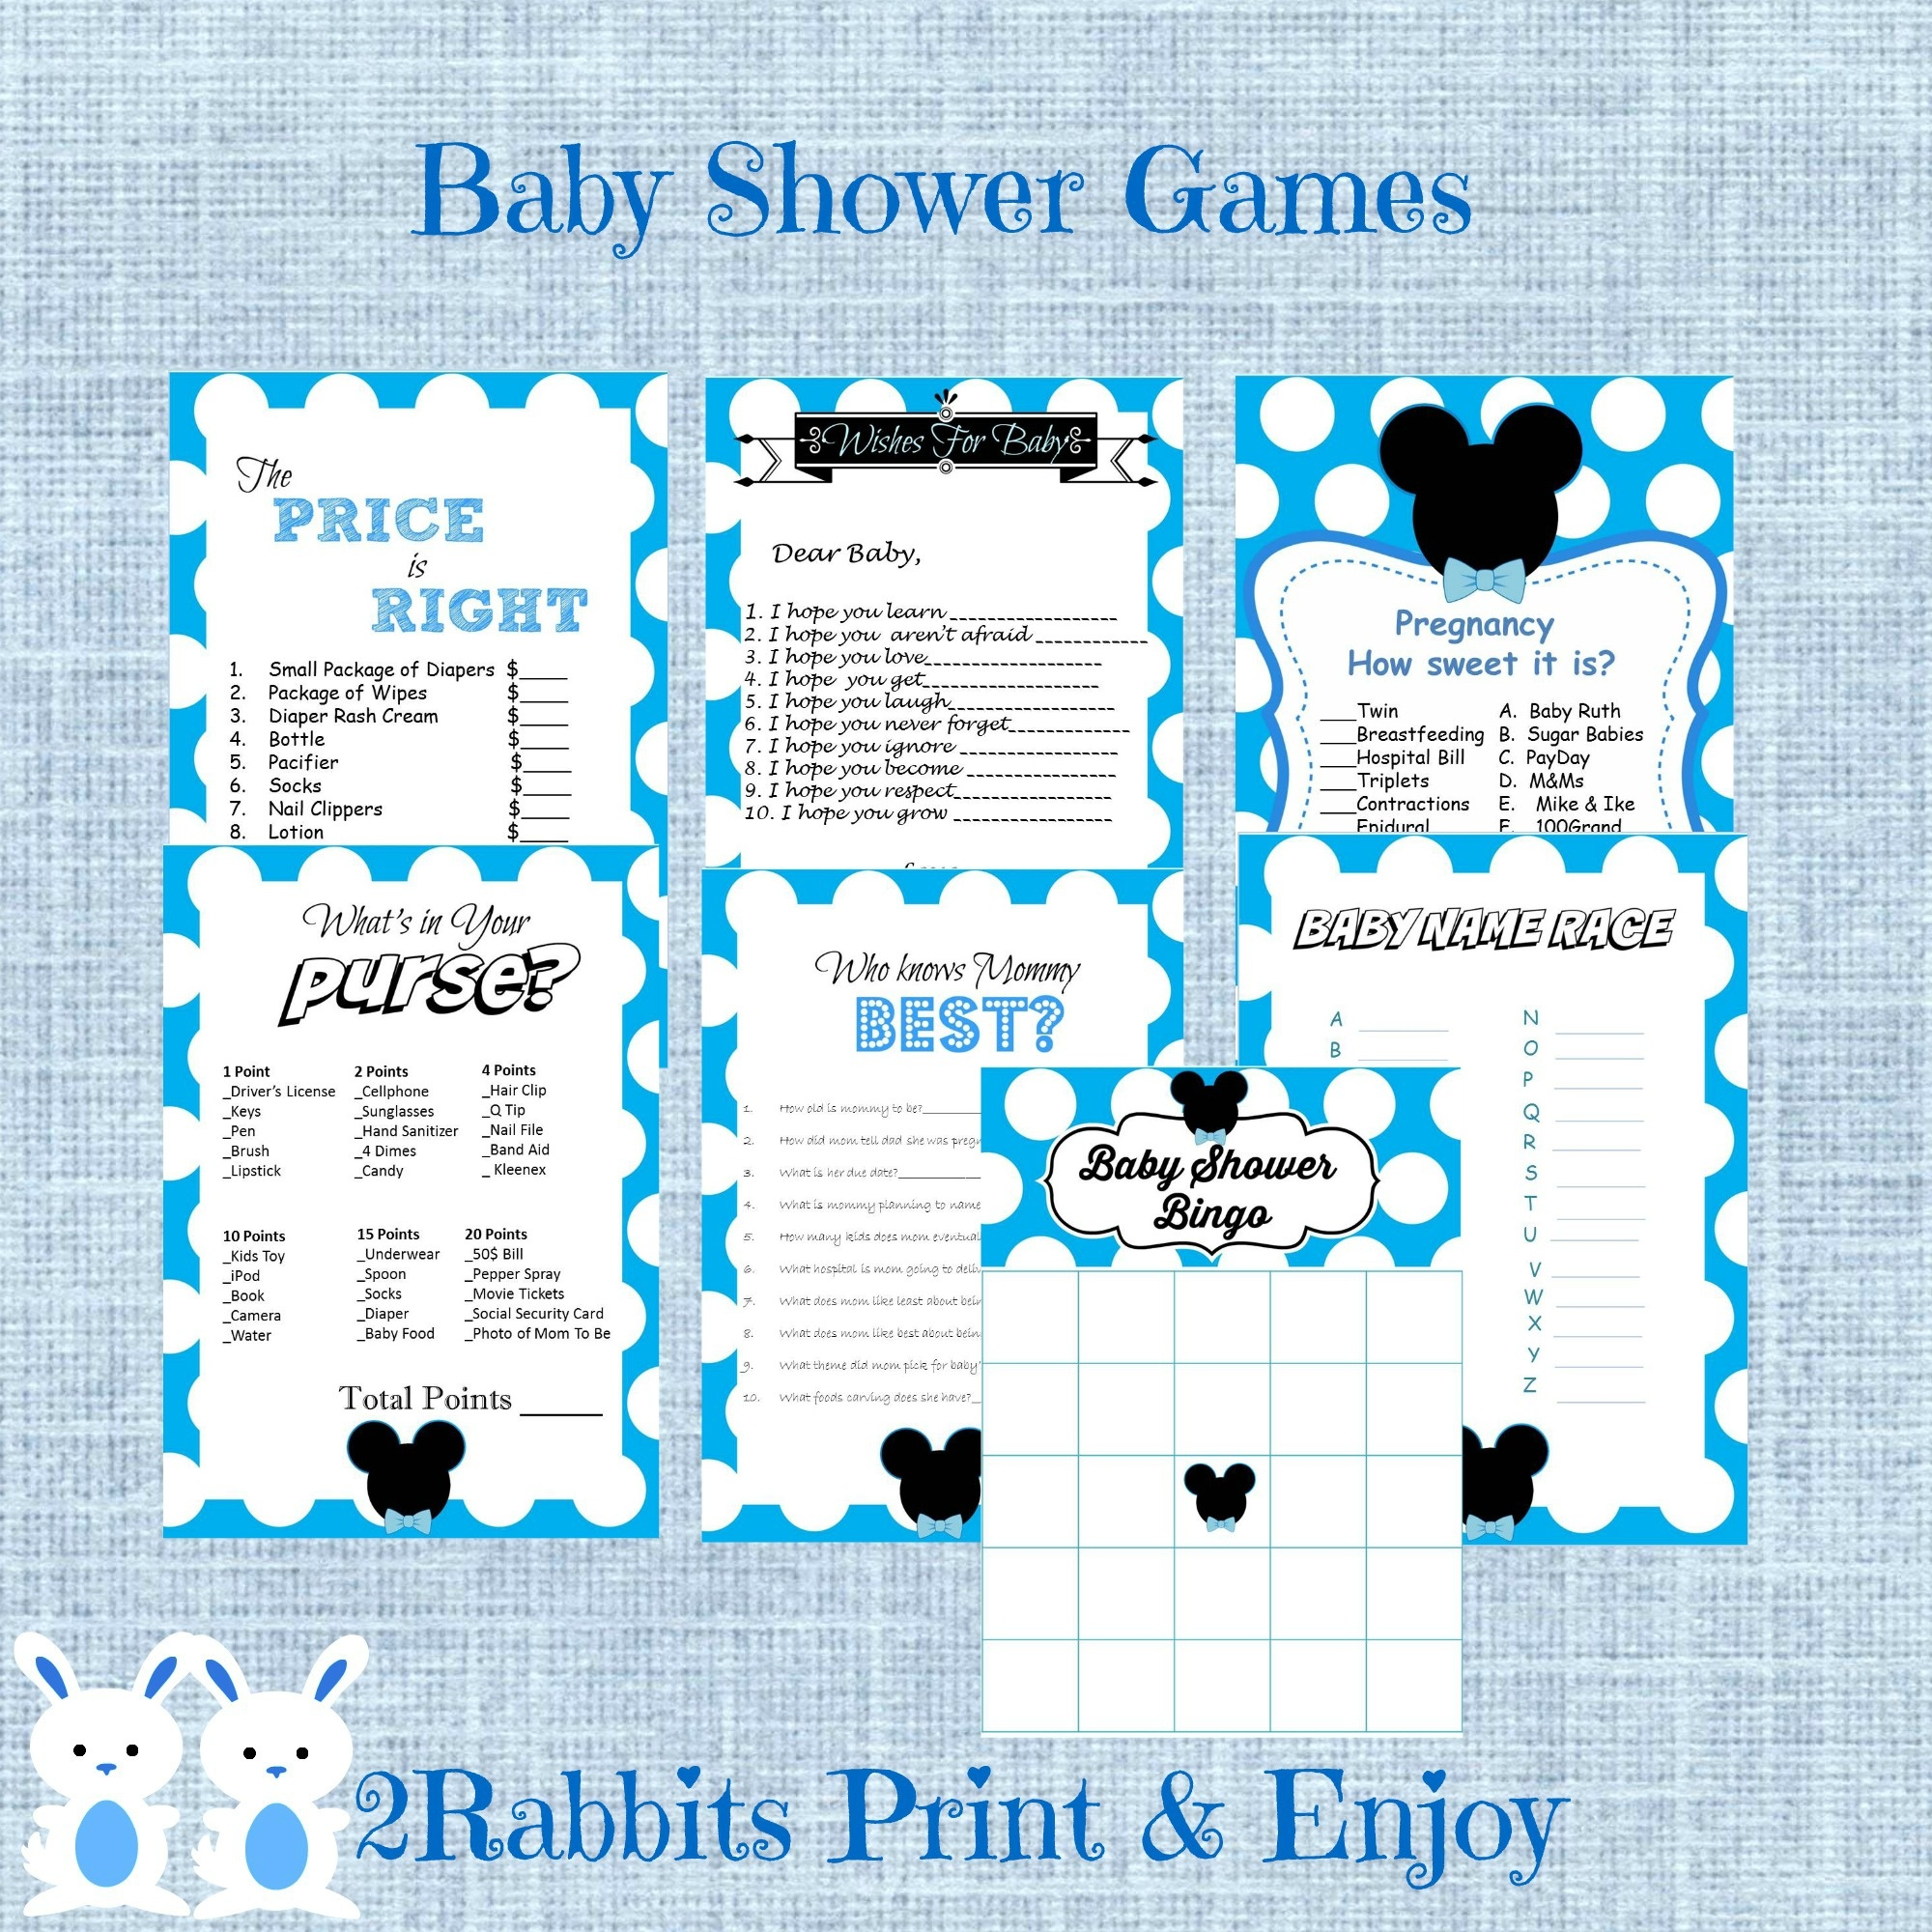 Mickey Mouse Babyshower Ideas - My Practical Baby Shower Guide - Free Printable Mickey Mouse Baby Shower Games